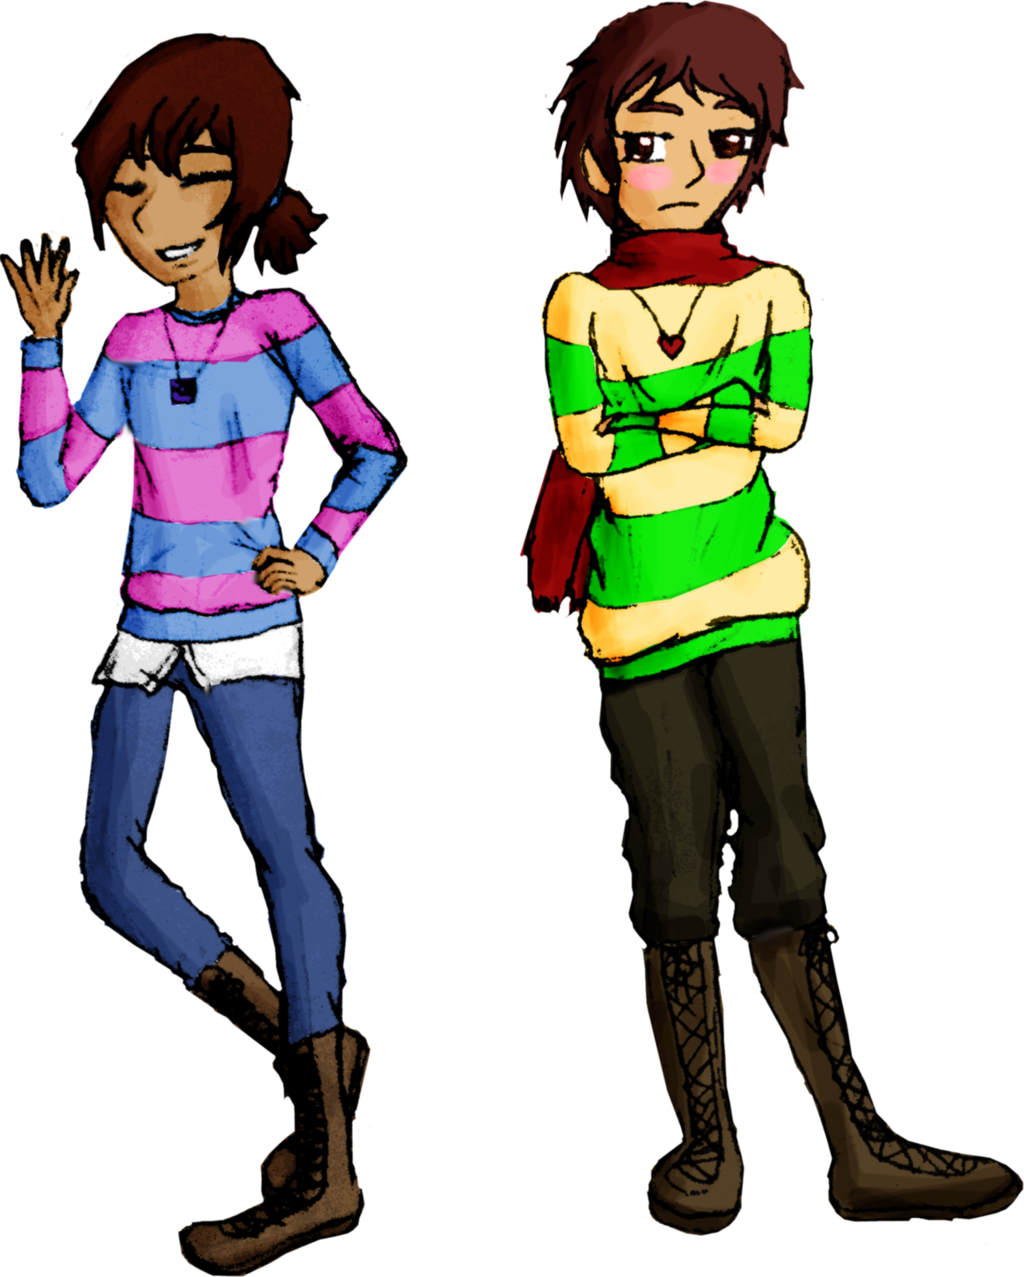 Teen clipart human boy. Frisk and chara by